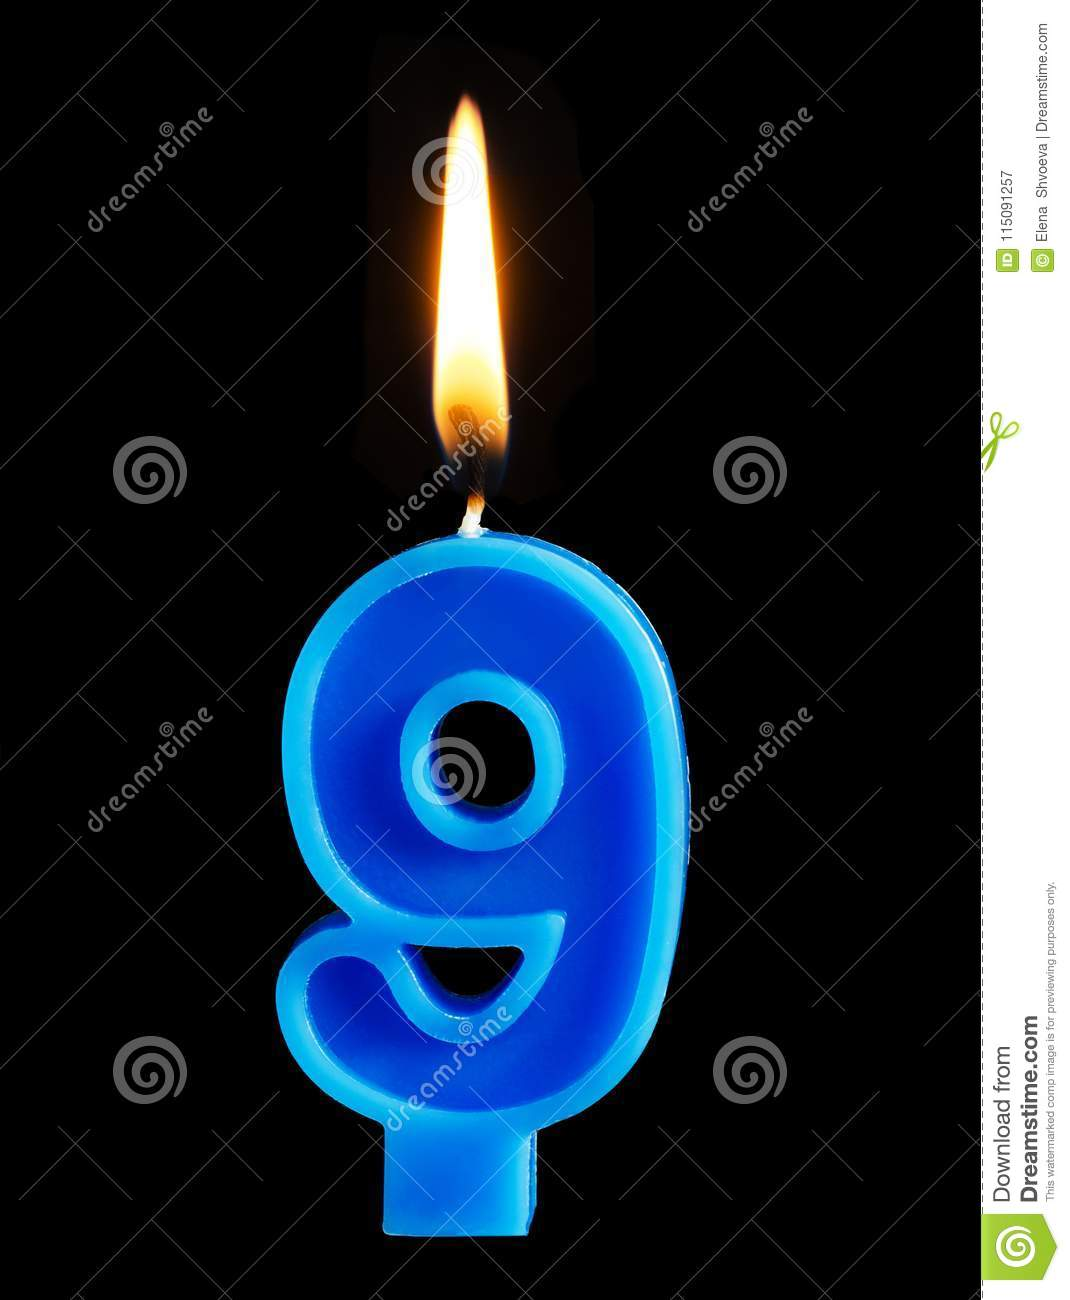 Burning birthday candle in the form of 9 nine figures for cake isolated on black background. The concept of celebrating a birthday